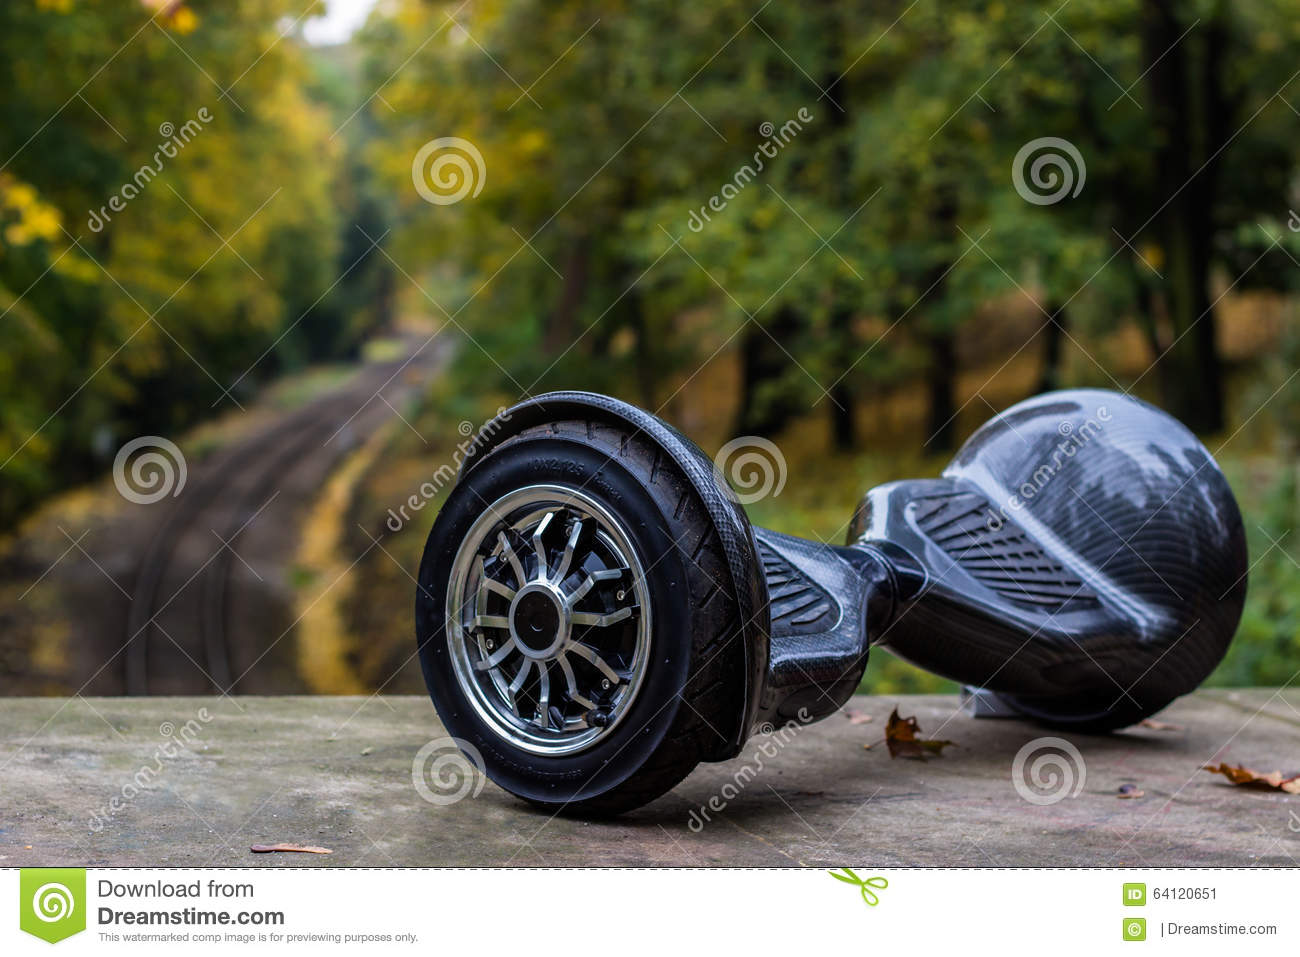 Black hoverboard against the background of railroad rails